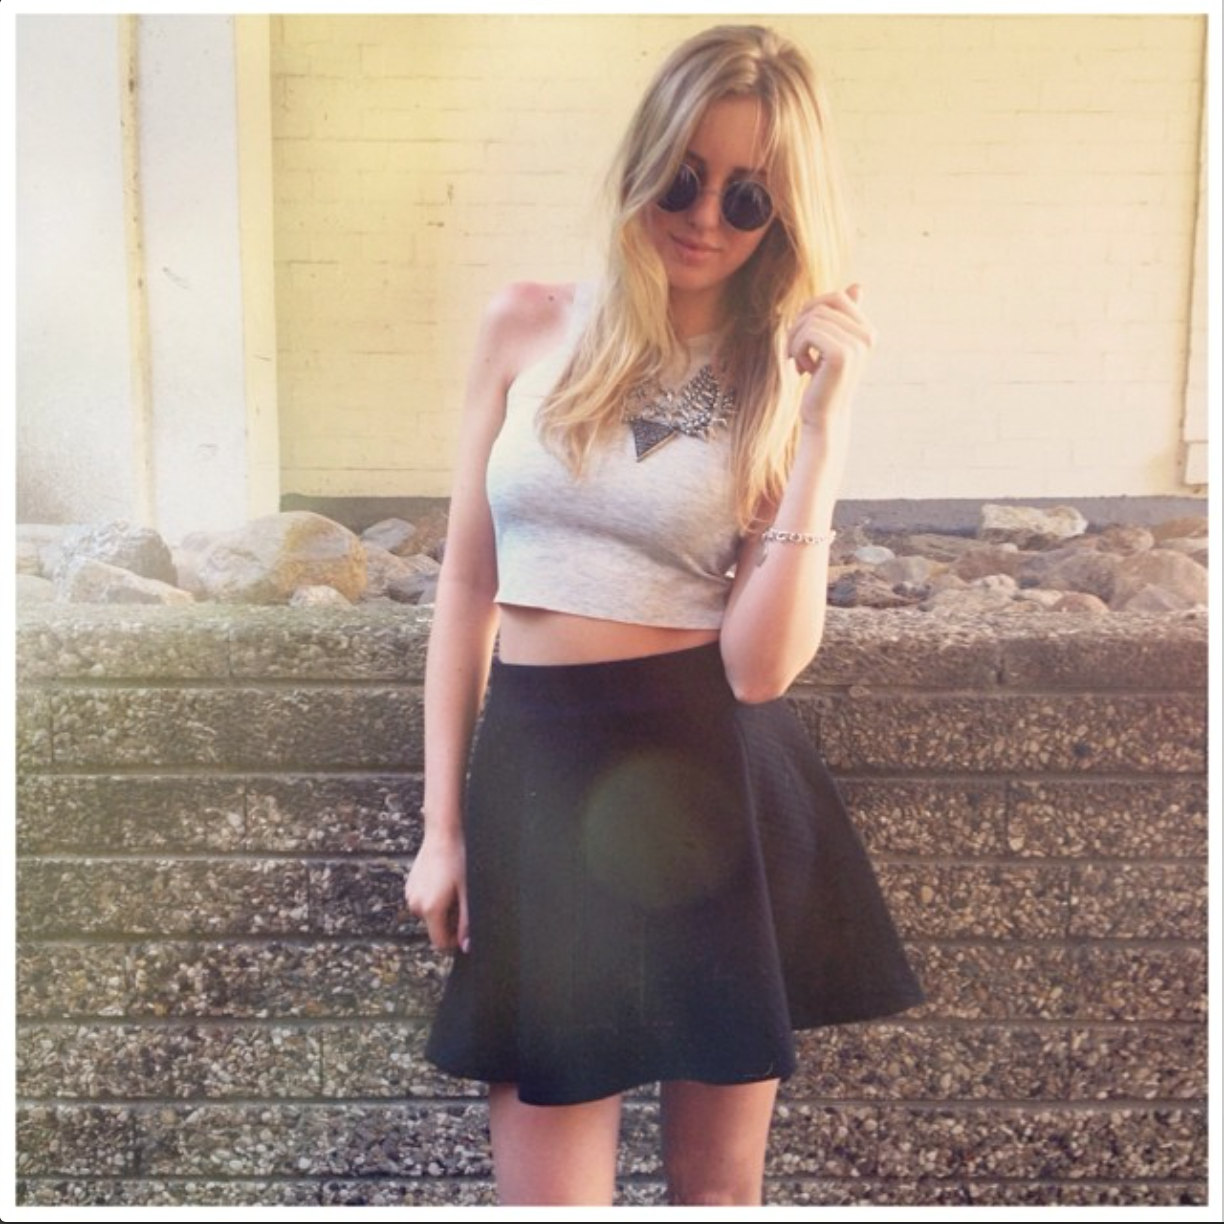 Lookbook, Cropped Top, Skirt, Blond, Style, Fashion